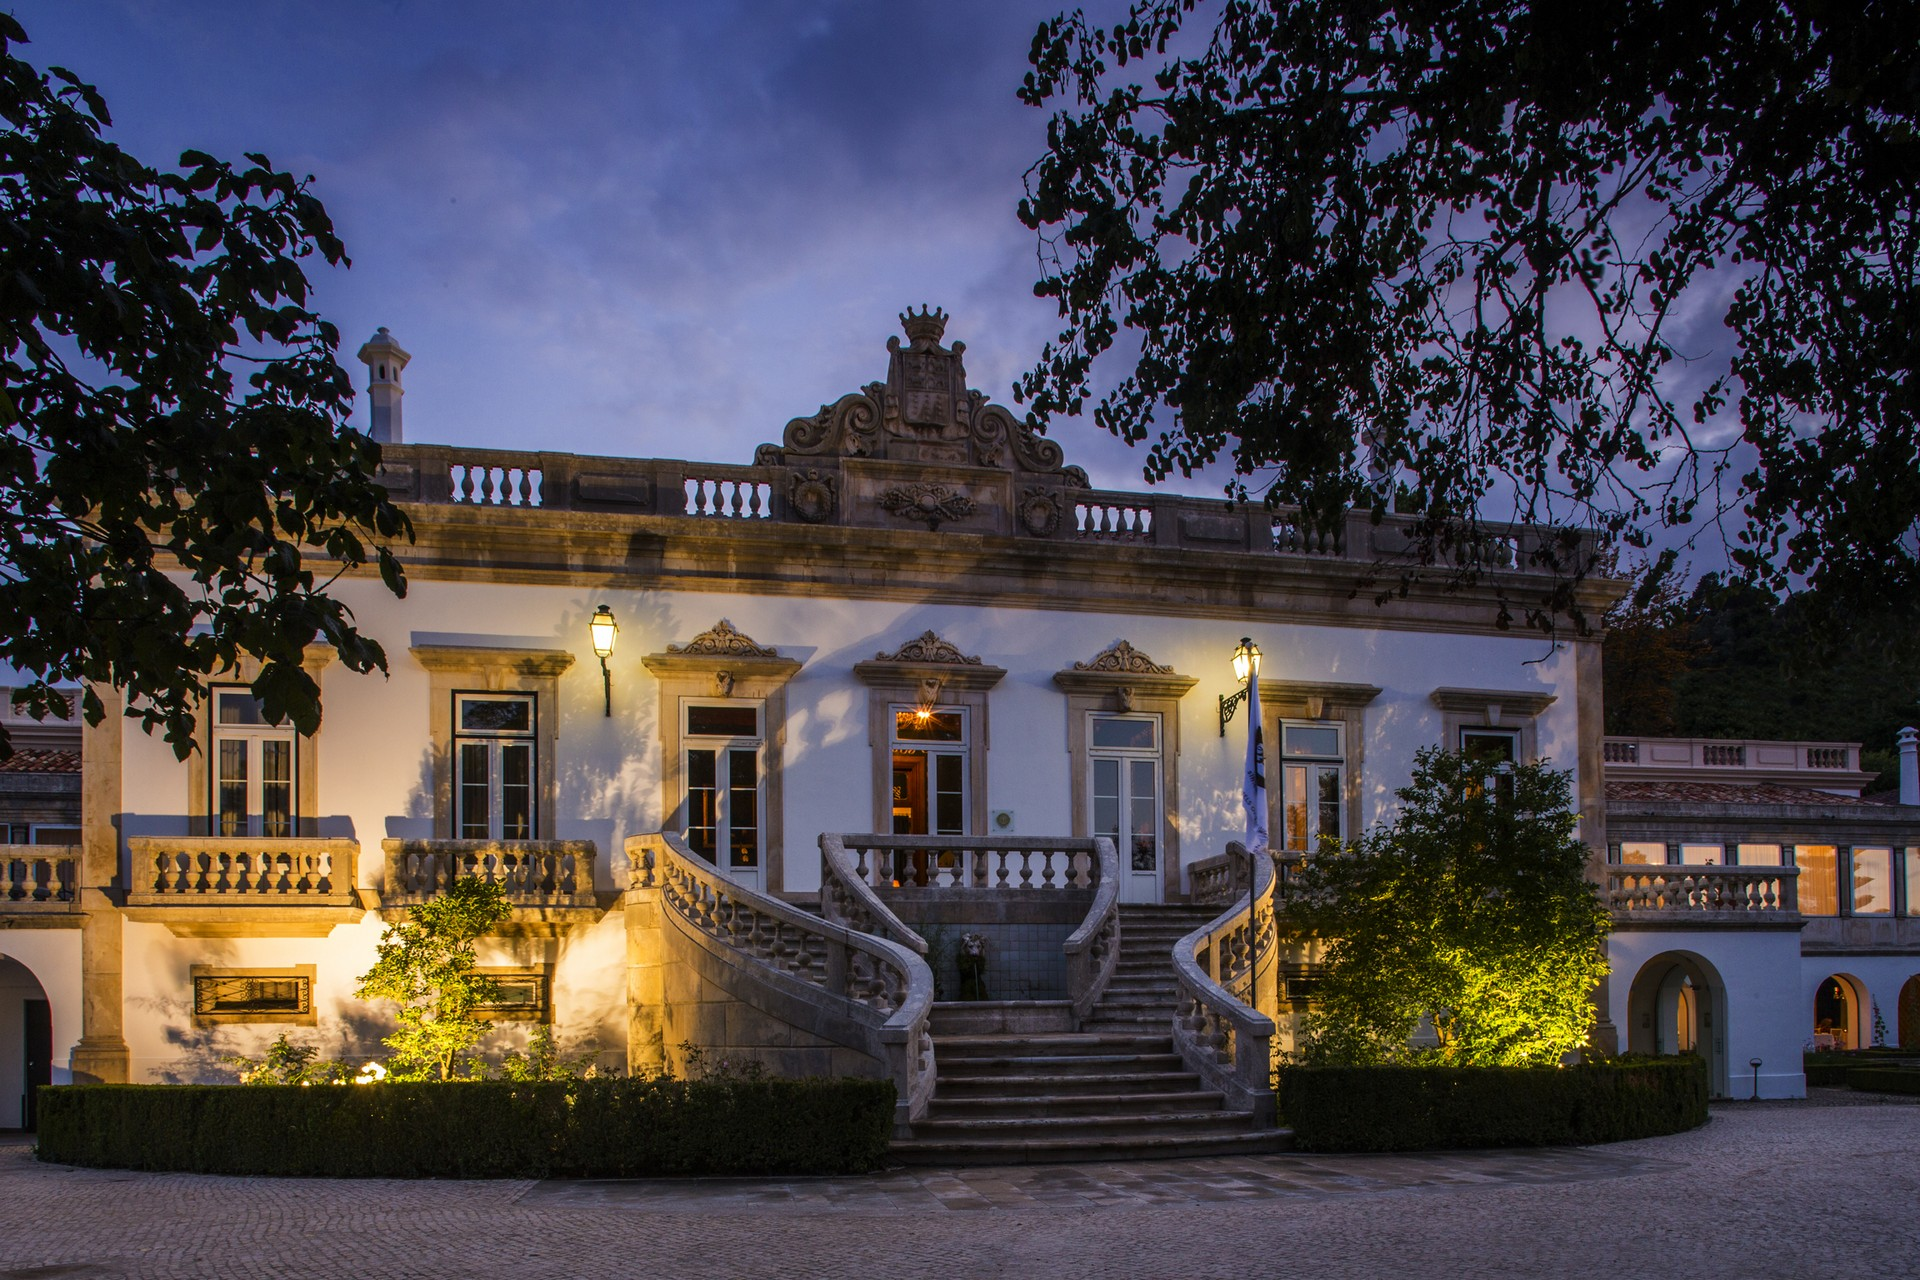 Luxury Hotels To Get To Know In The Centre: Quinta das Lágrimas Hotel luxury hotels Luxury Hotels To Get To Know In The Centre Luxury Hotels To Get To Know In The Centre 1